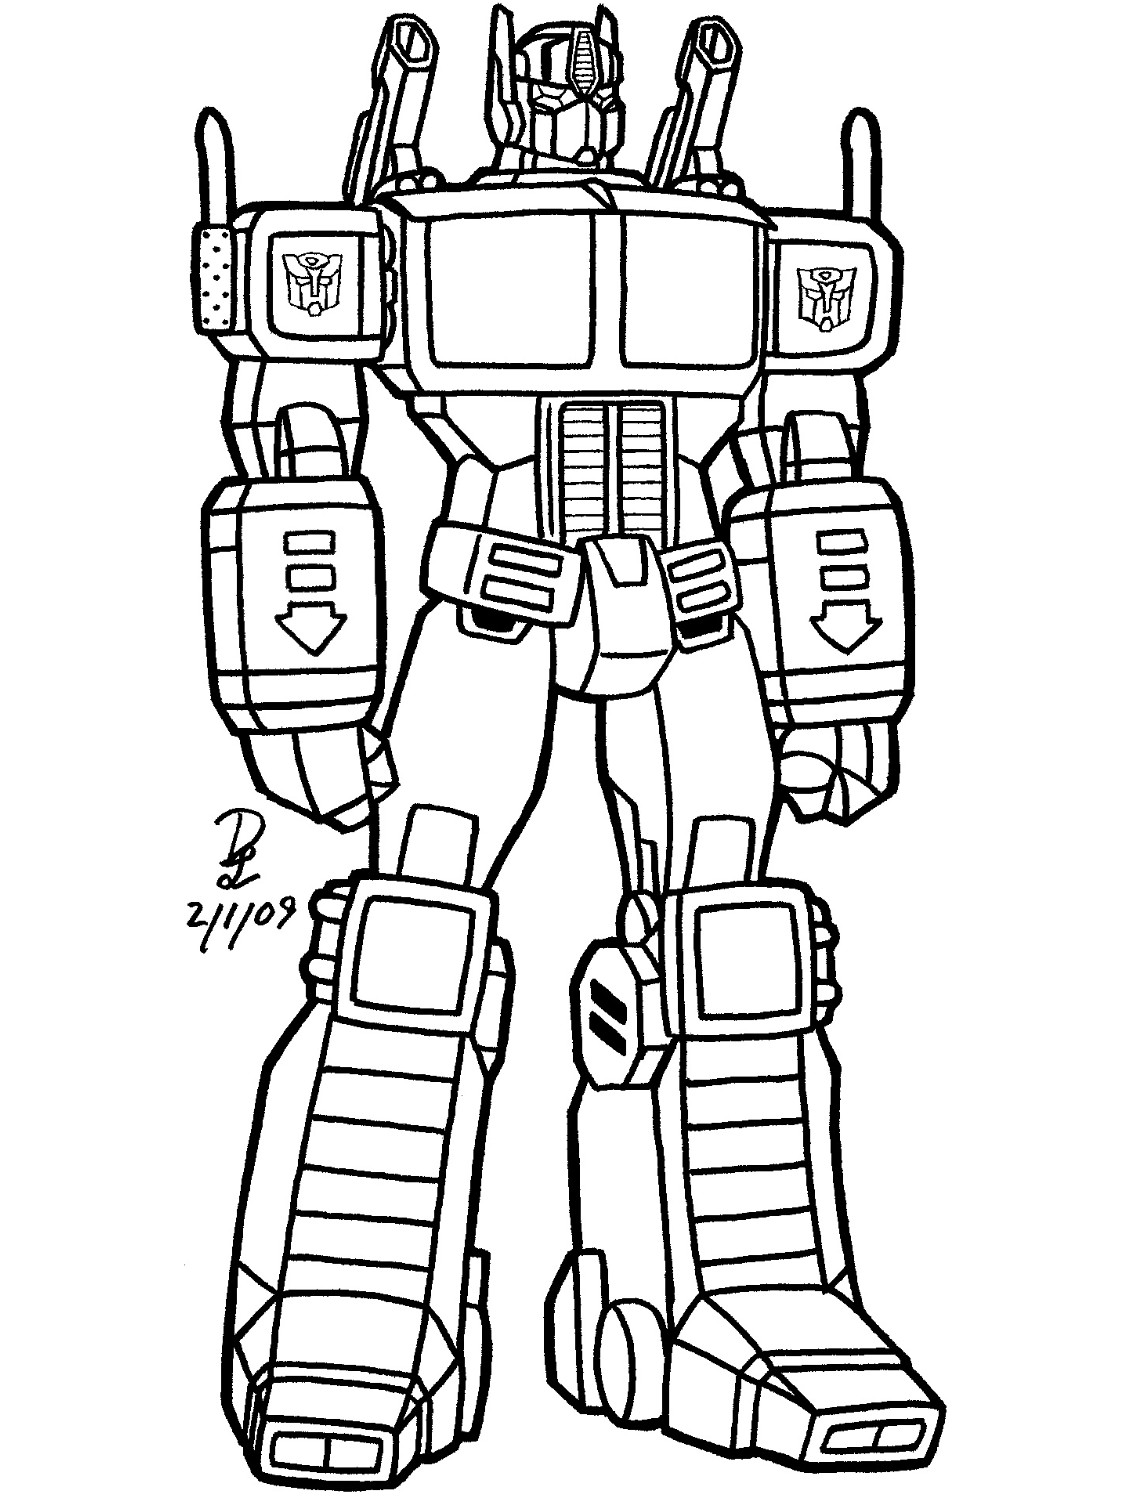 Transformer Drawing at GetDrawings.com | Free for personal use ...